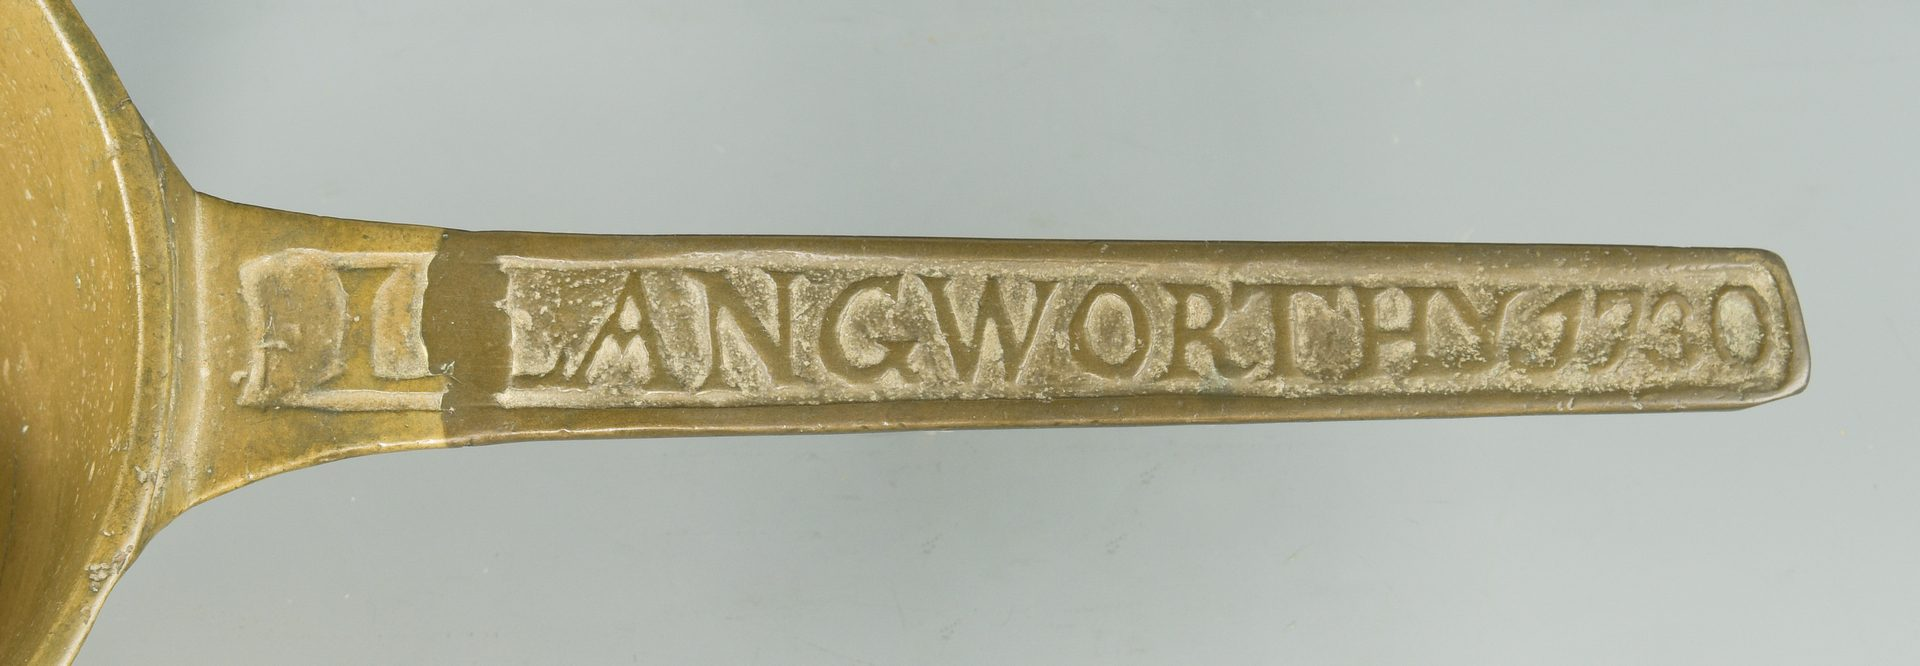 Lot 140: 1730 Brass Posnet, Langworthy